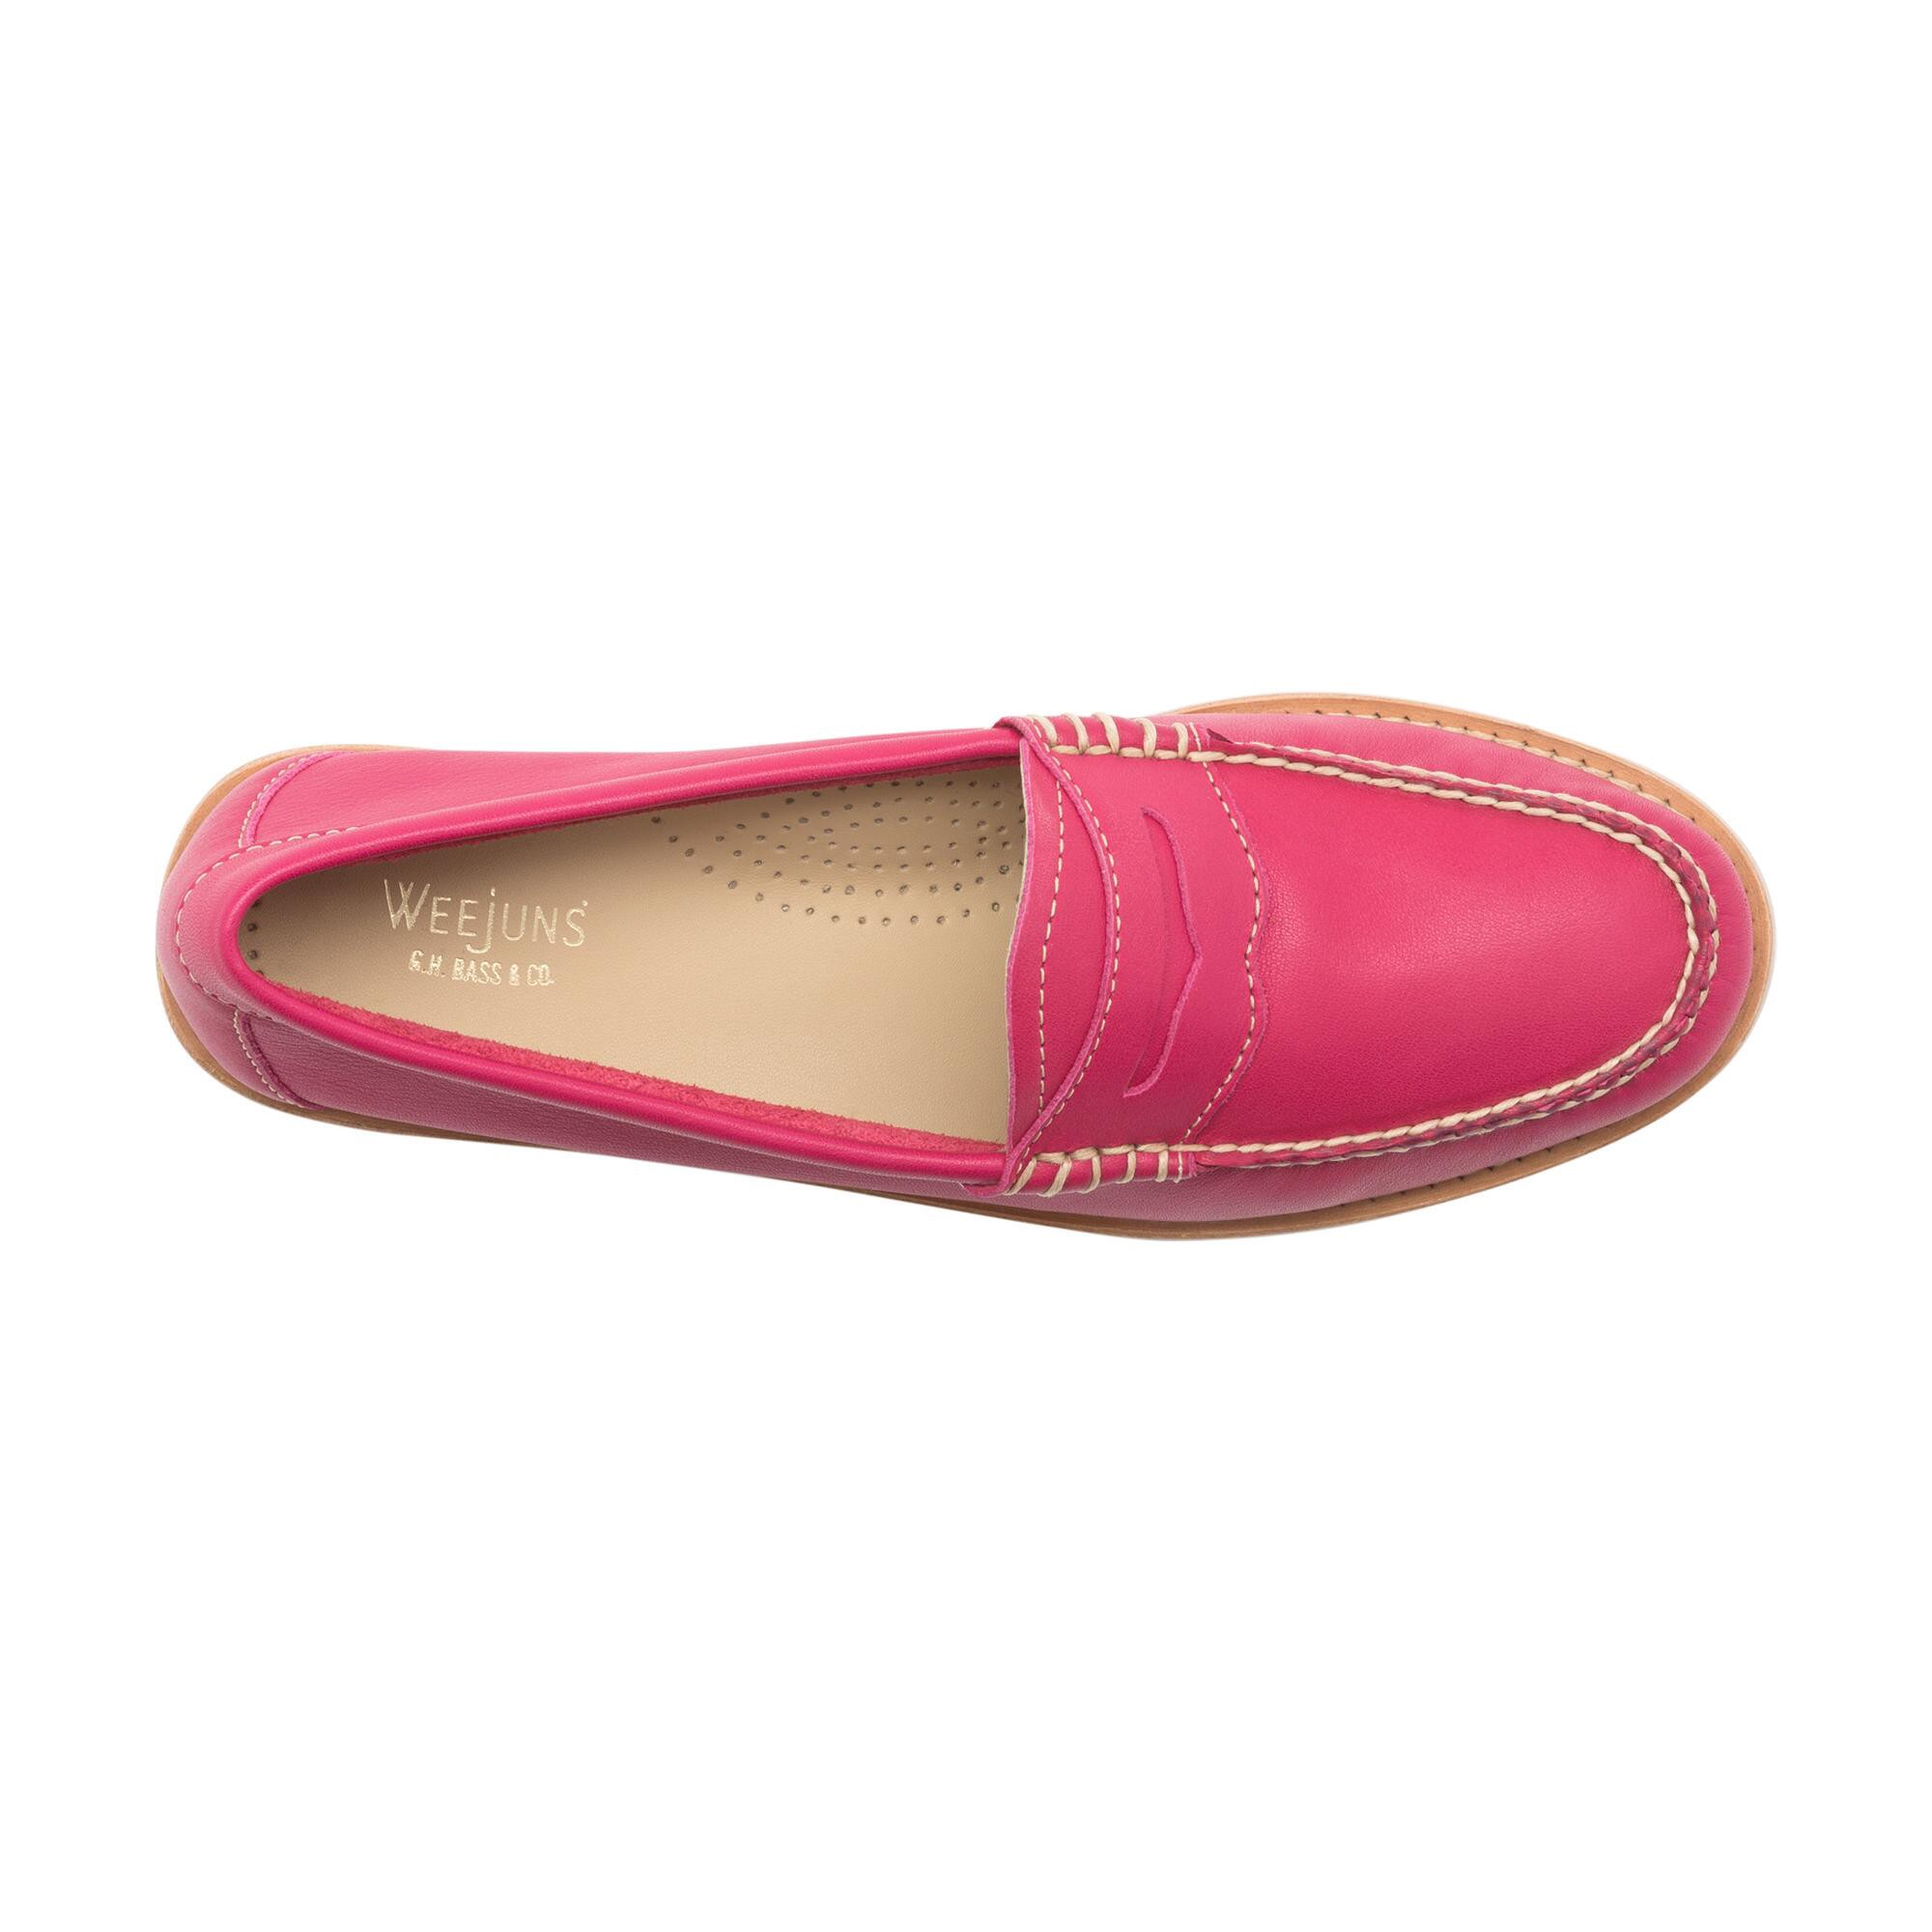 e71860baeea G.h. Bass   Co. Whitney Natural Sole Weejuns - Berry Pink 6.5